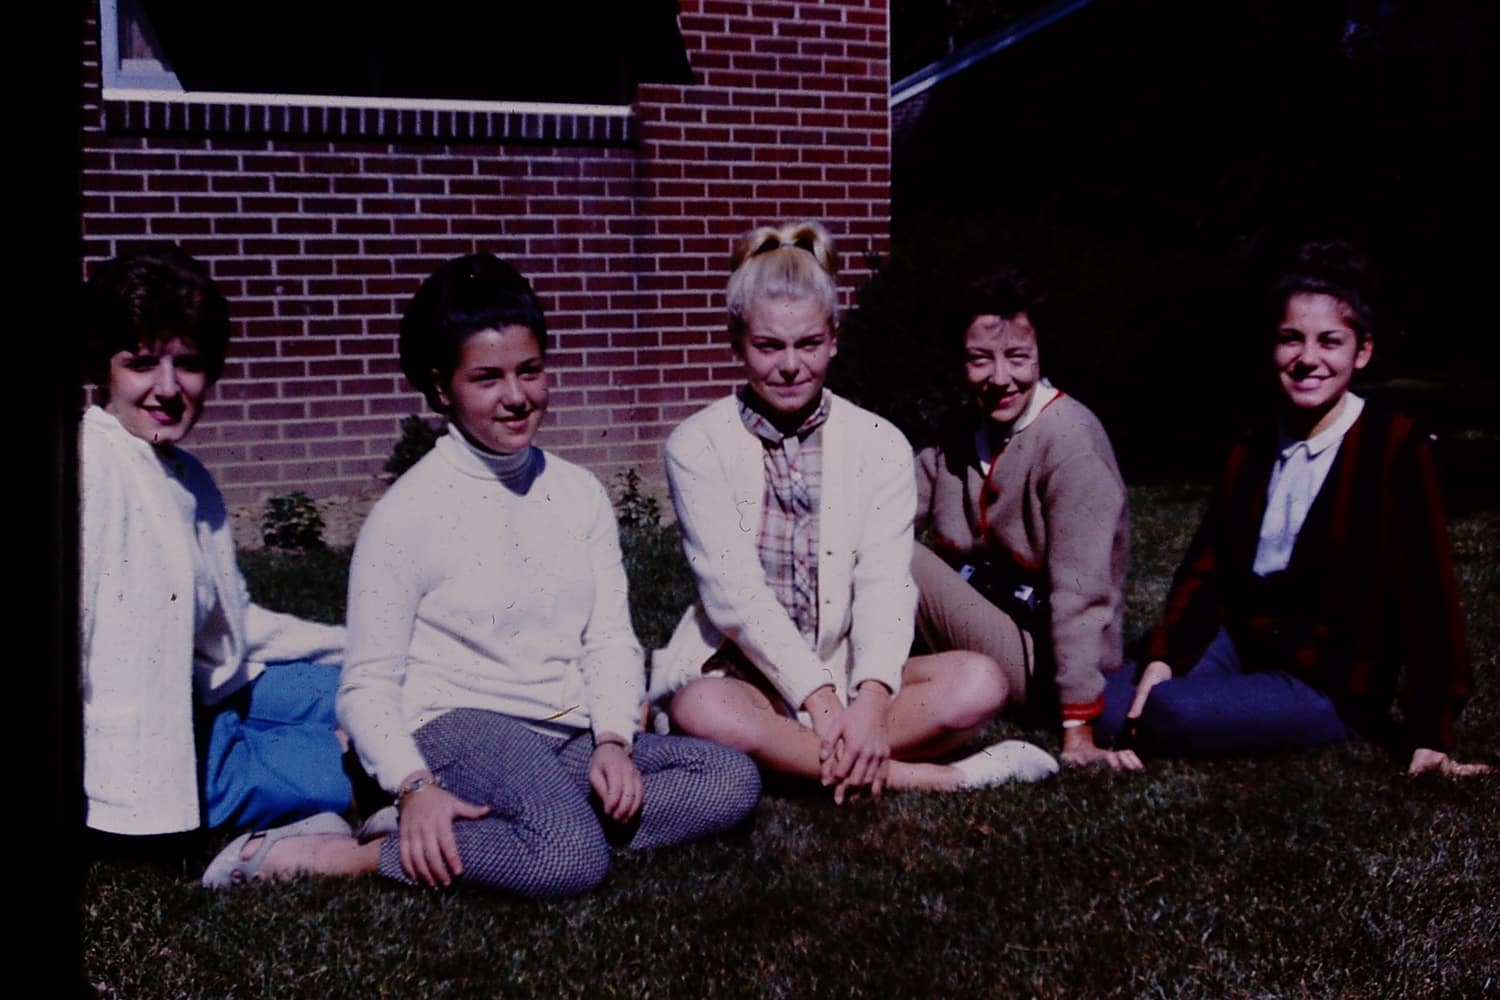 Aunt Sandy, Nena, my mom, my grandma, and my Aunt Gayle circa1964 in Amherst, Ohio.